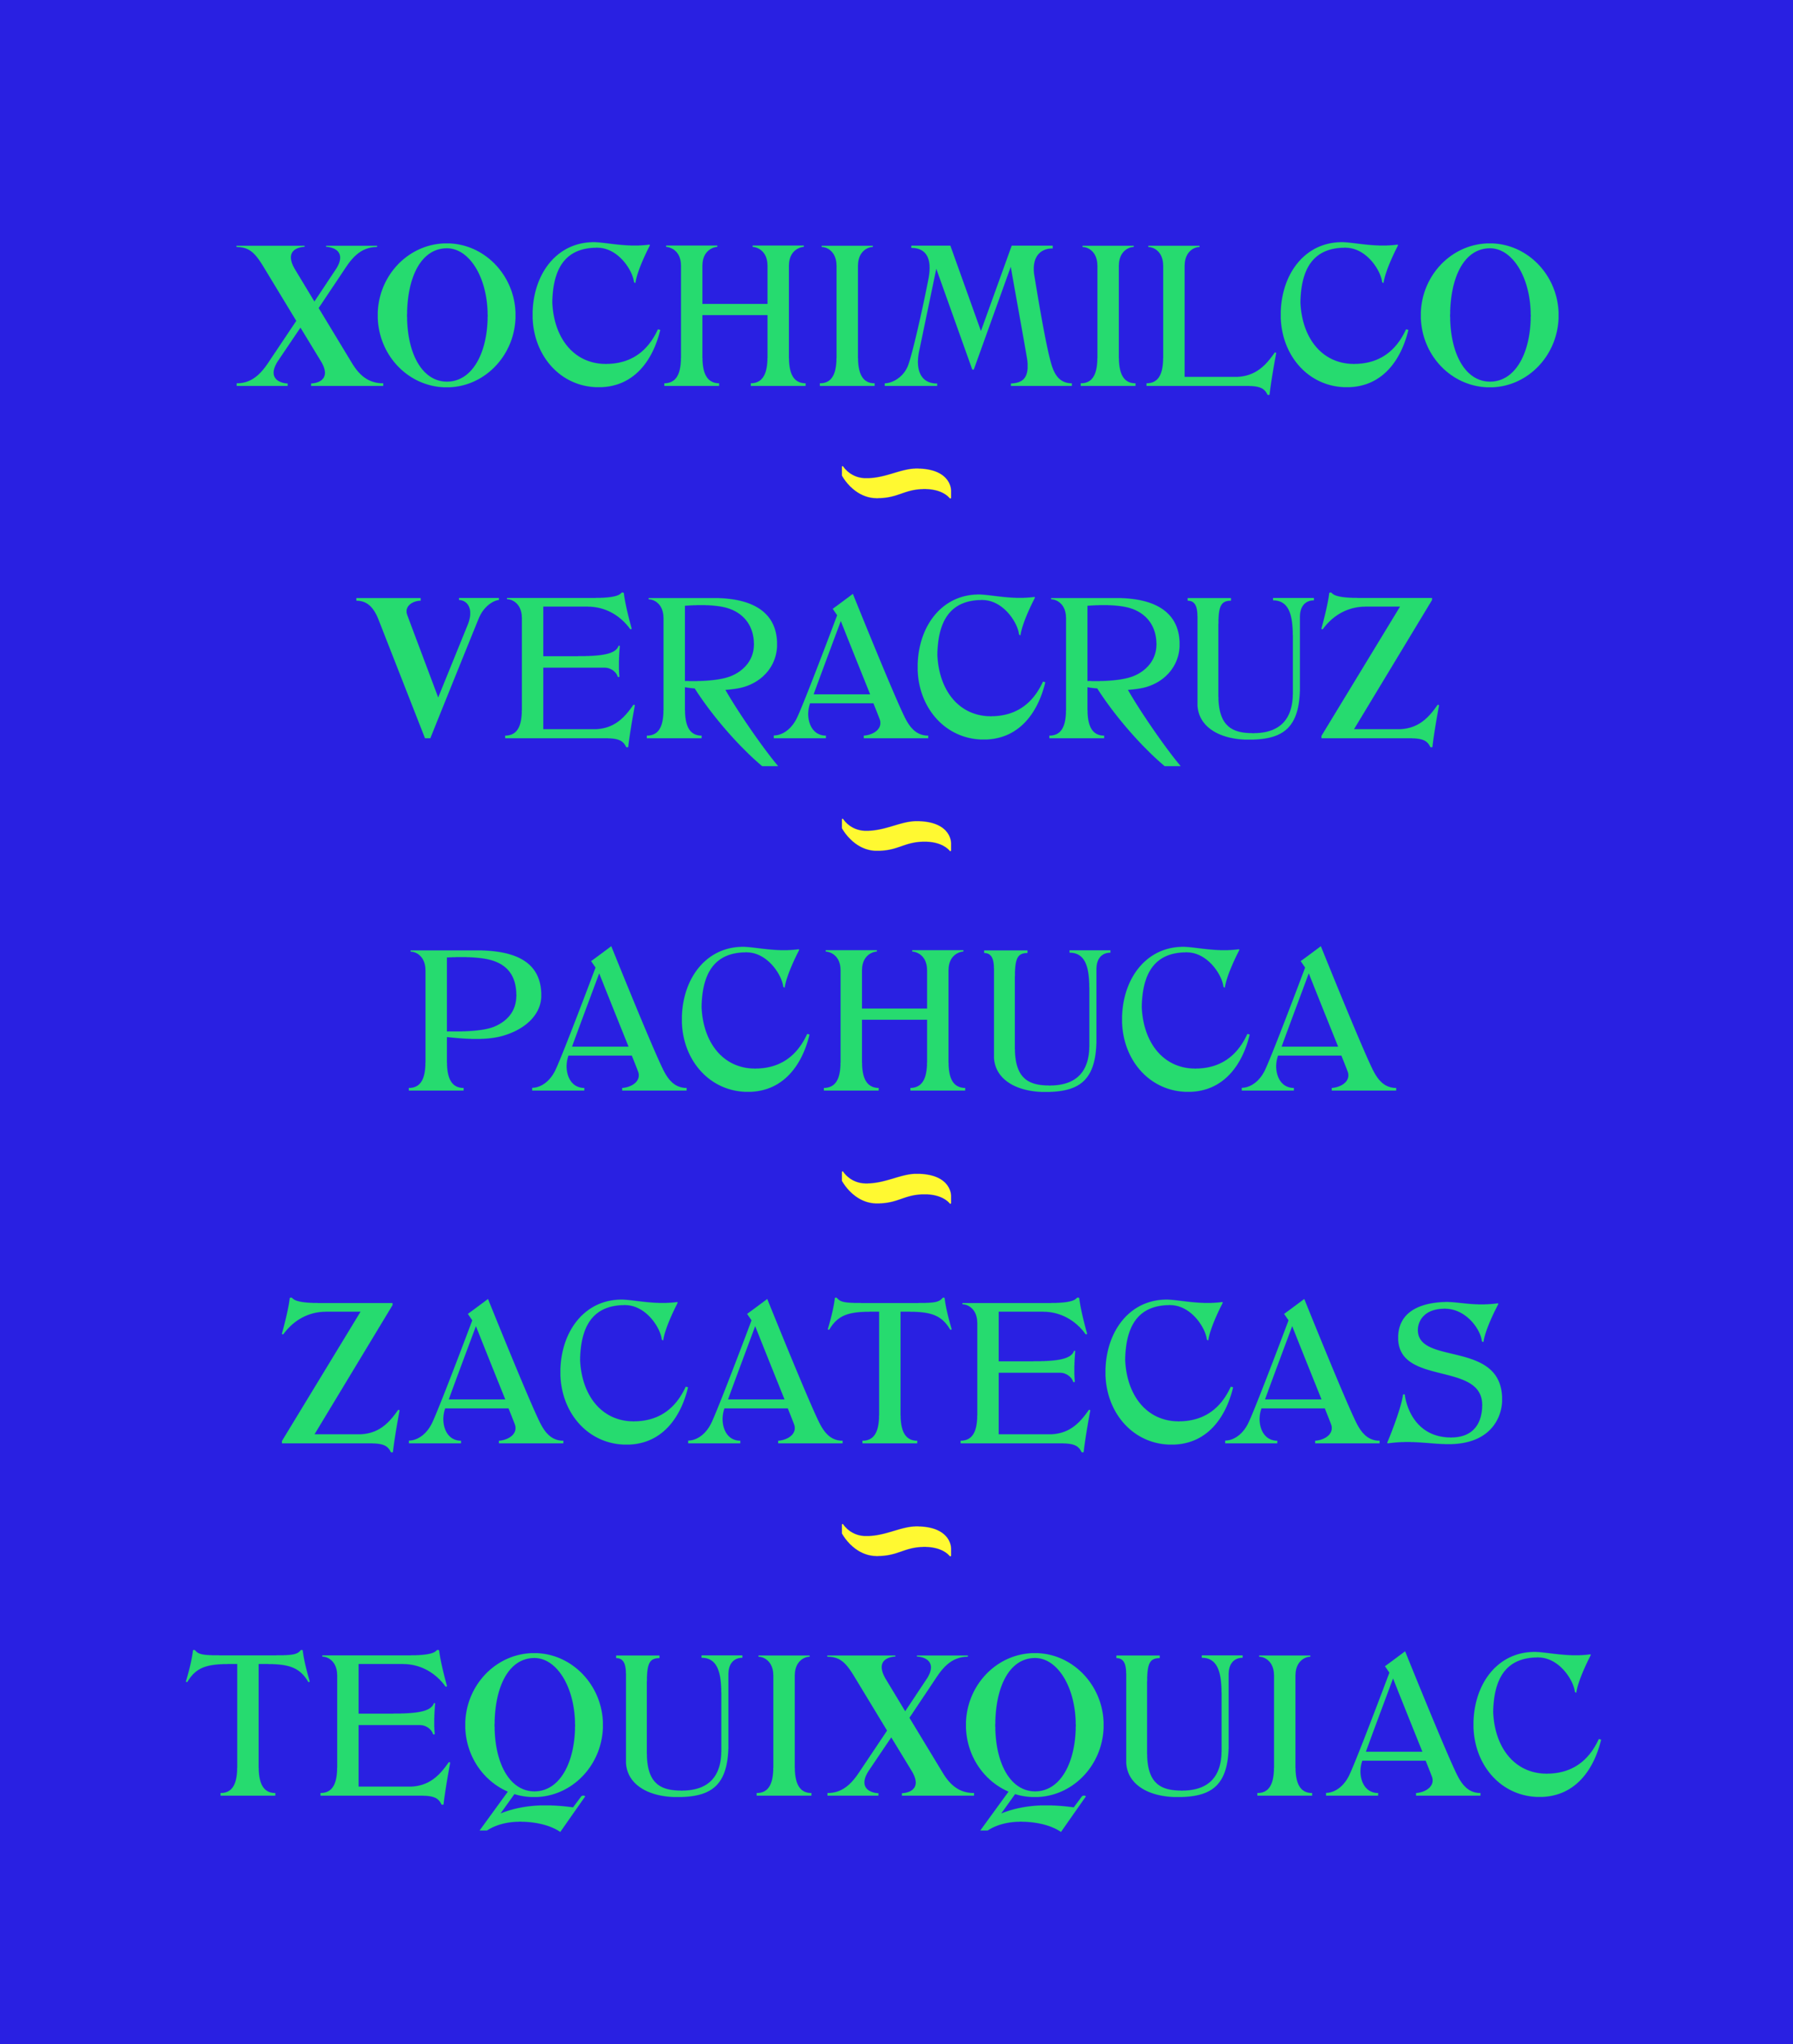 Post , as used to depict several cities in Mexico, note how the tail in both Q and R add a nice grounding flair to balance the robust vertical stress in the uppercase set.